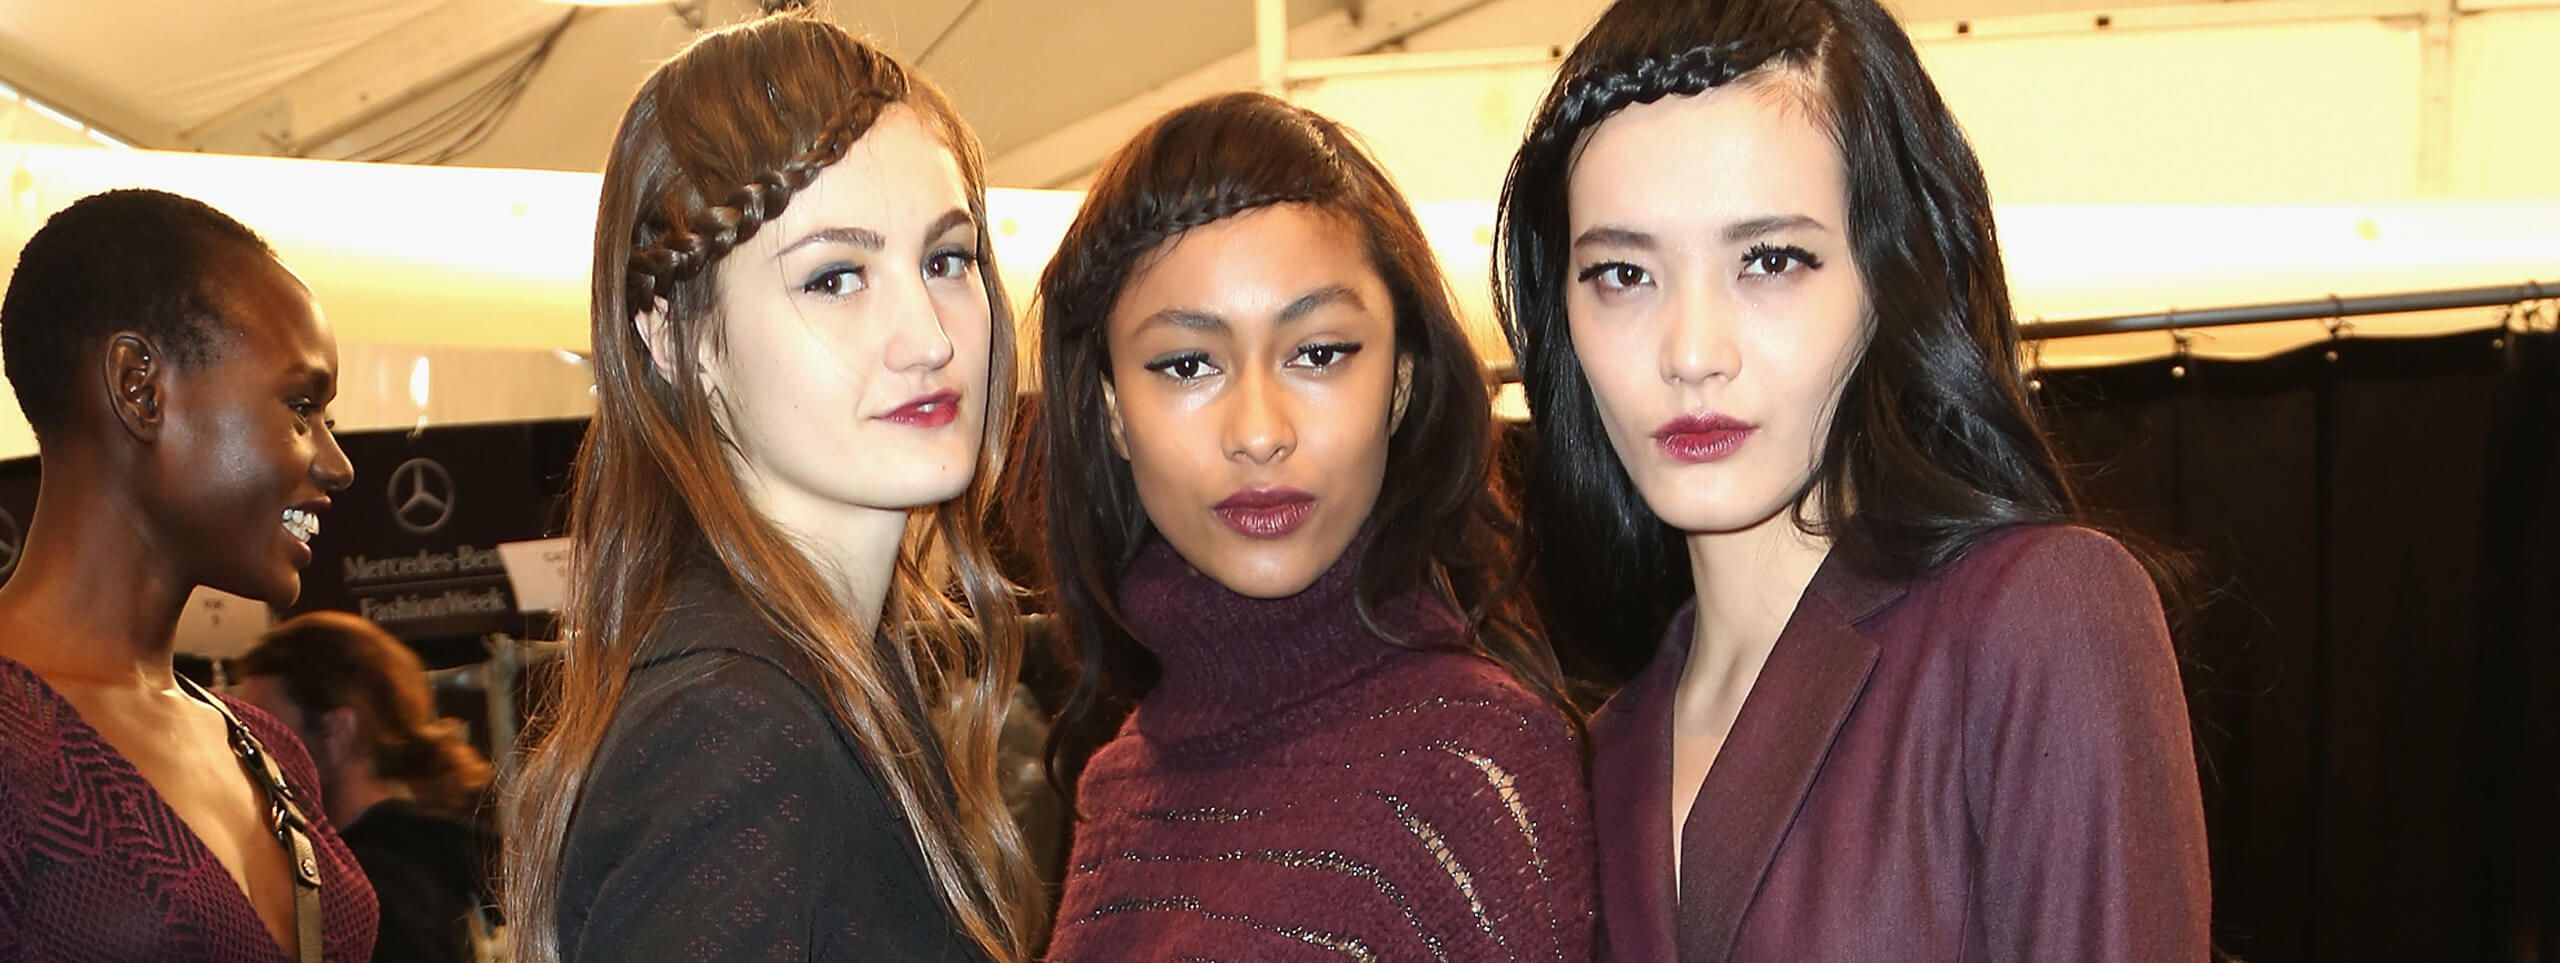 Models wear mid-length dark hair in braided hairstyle